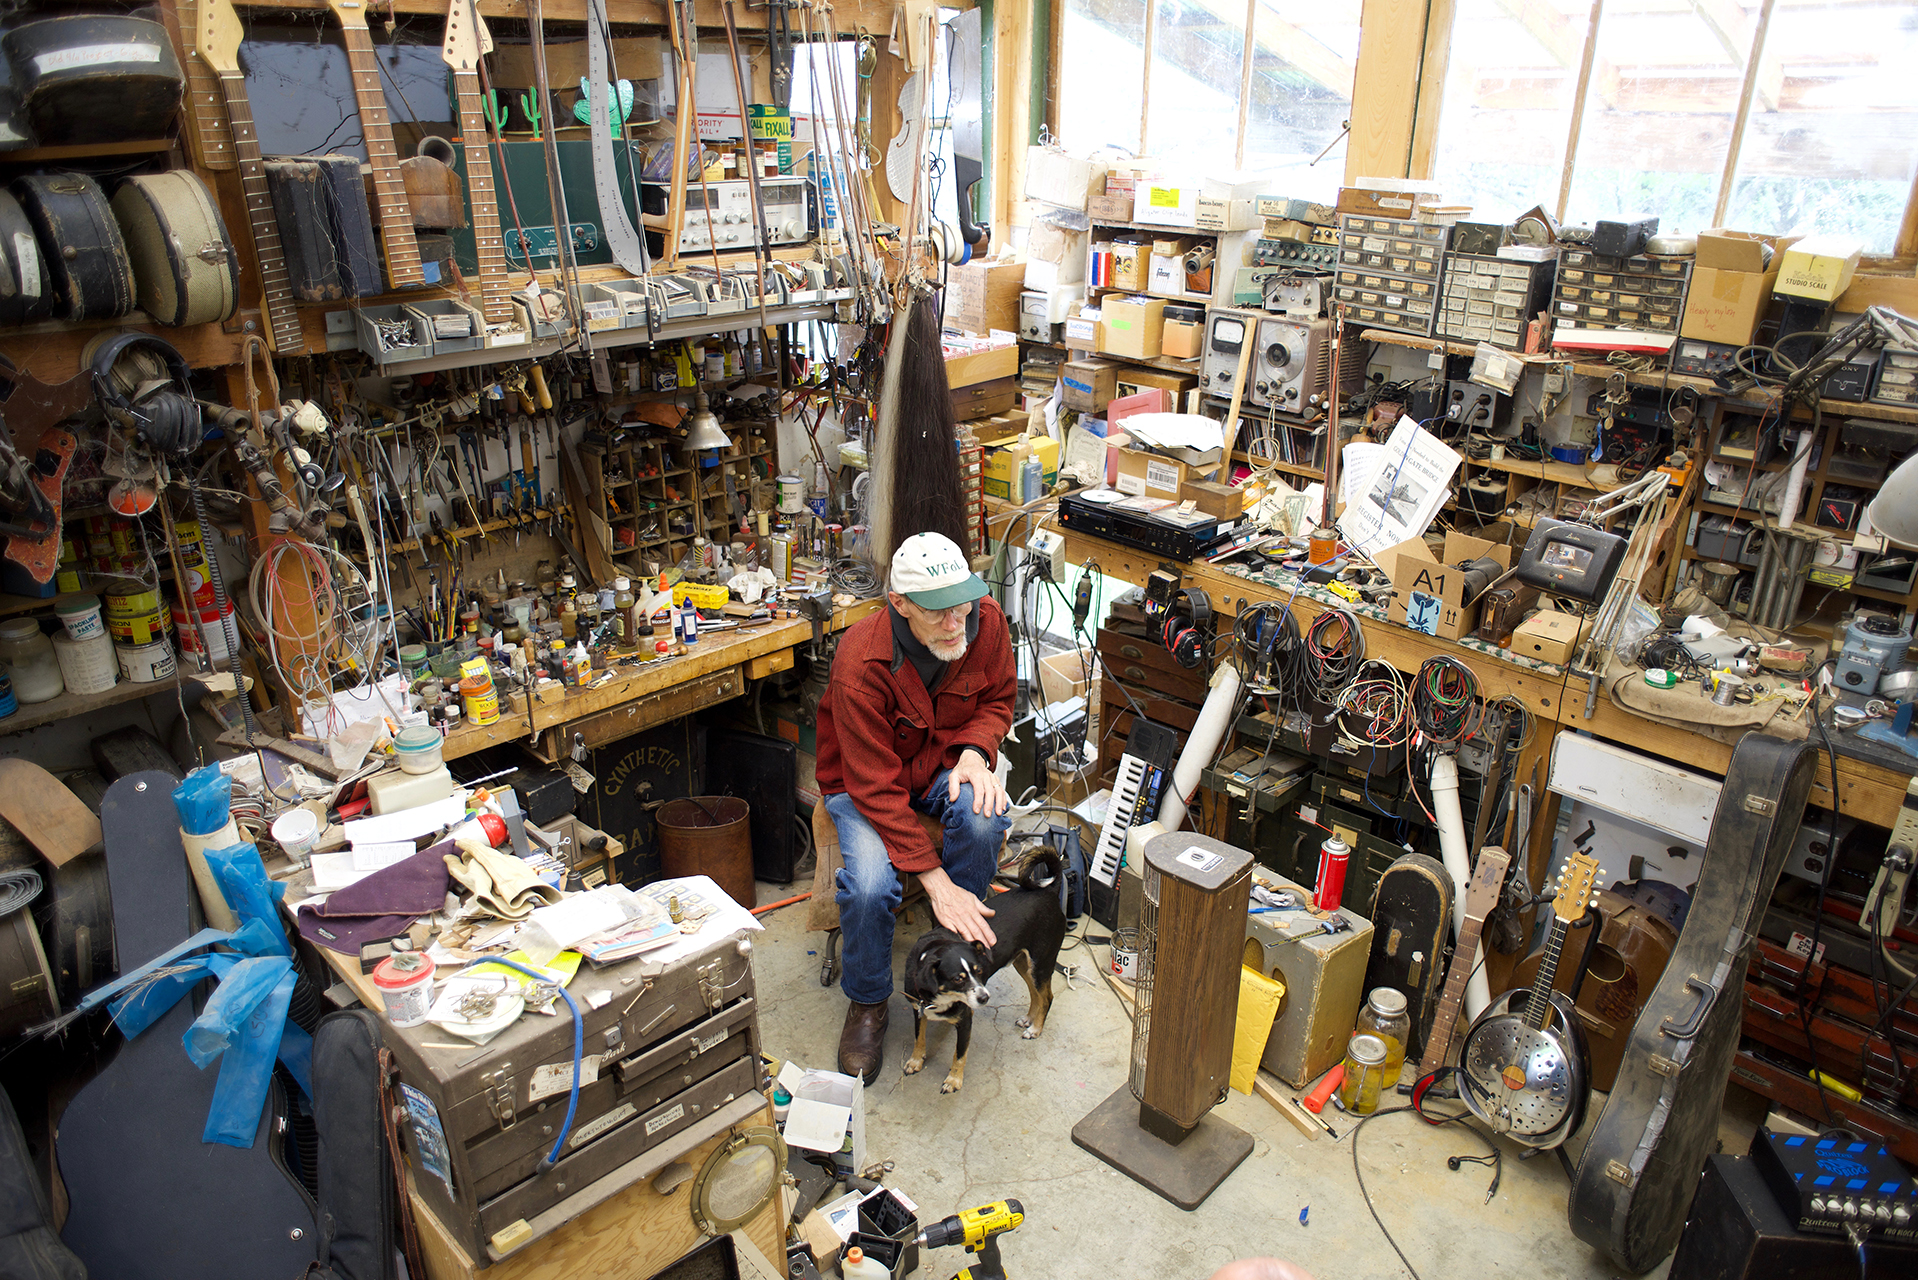 Luthier Keith Cary in his workshop surrounded by a lifetime's worth of instruments, tools and supplies.